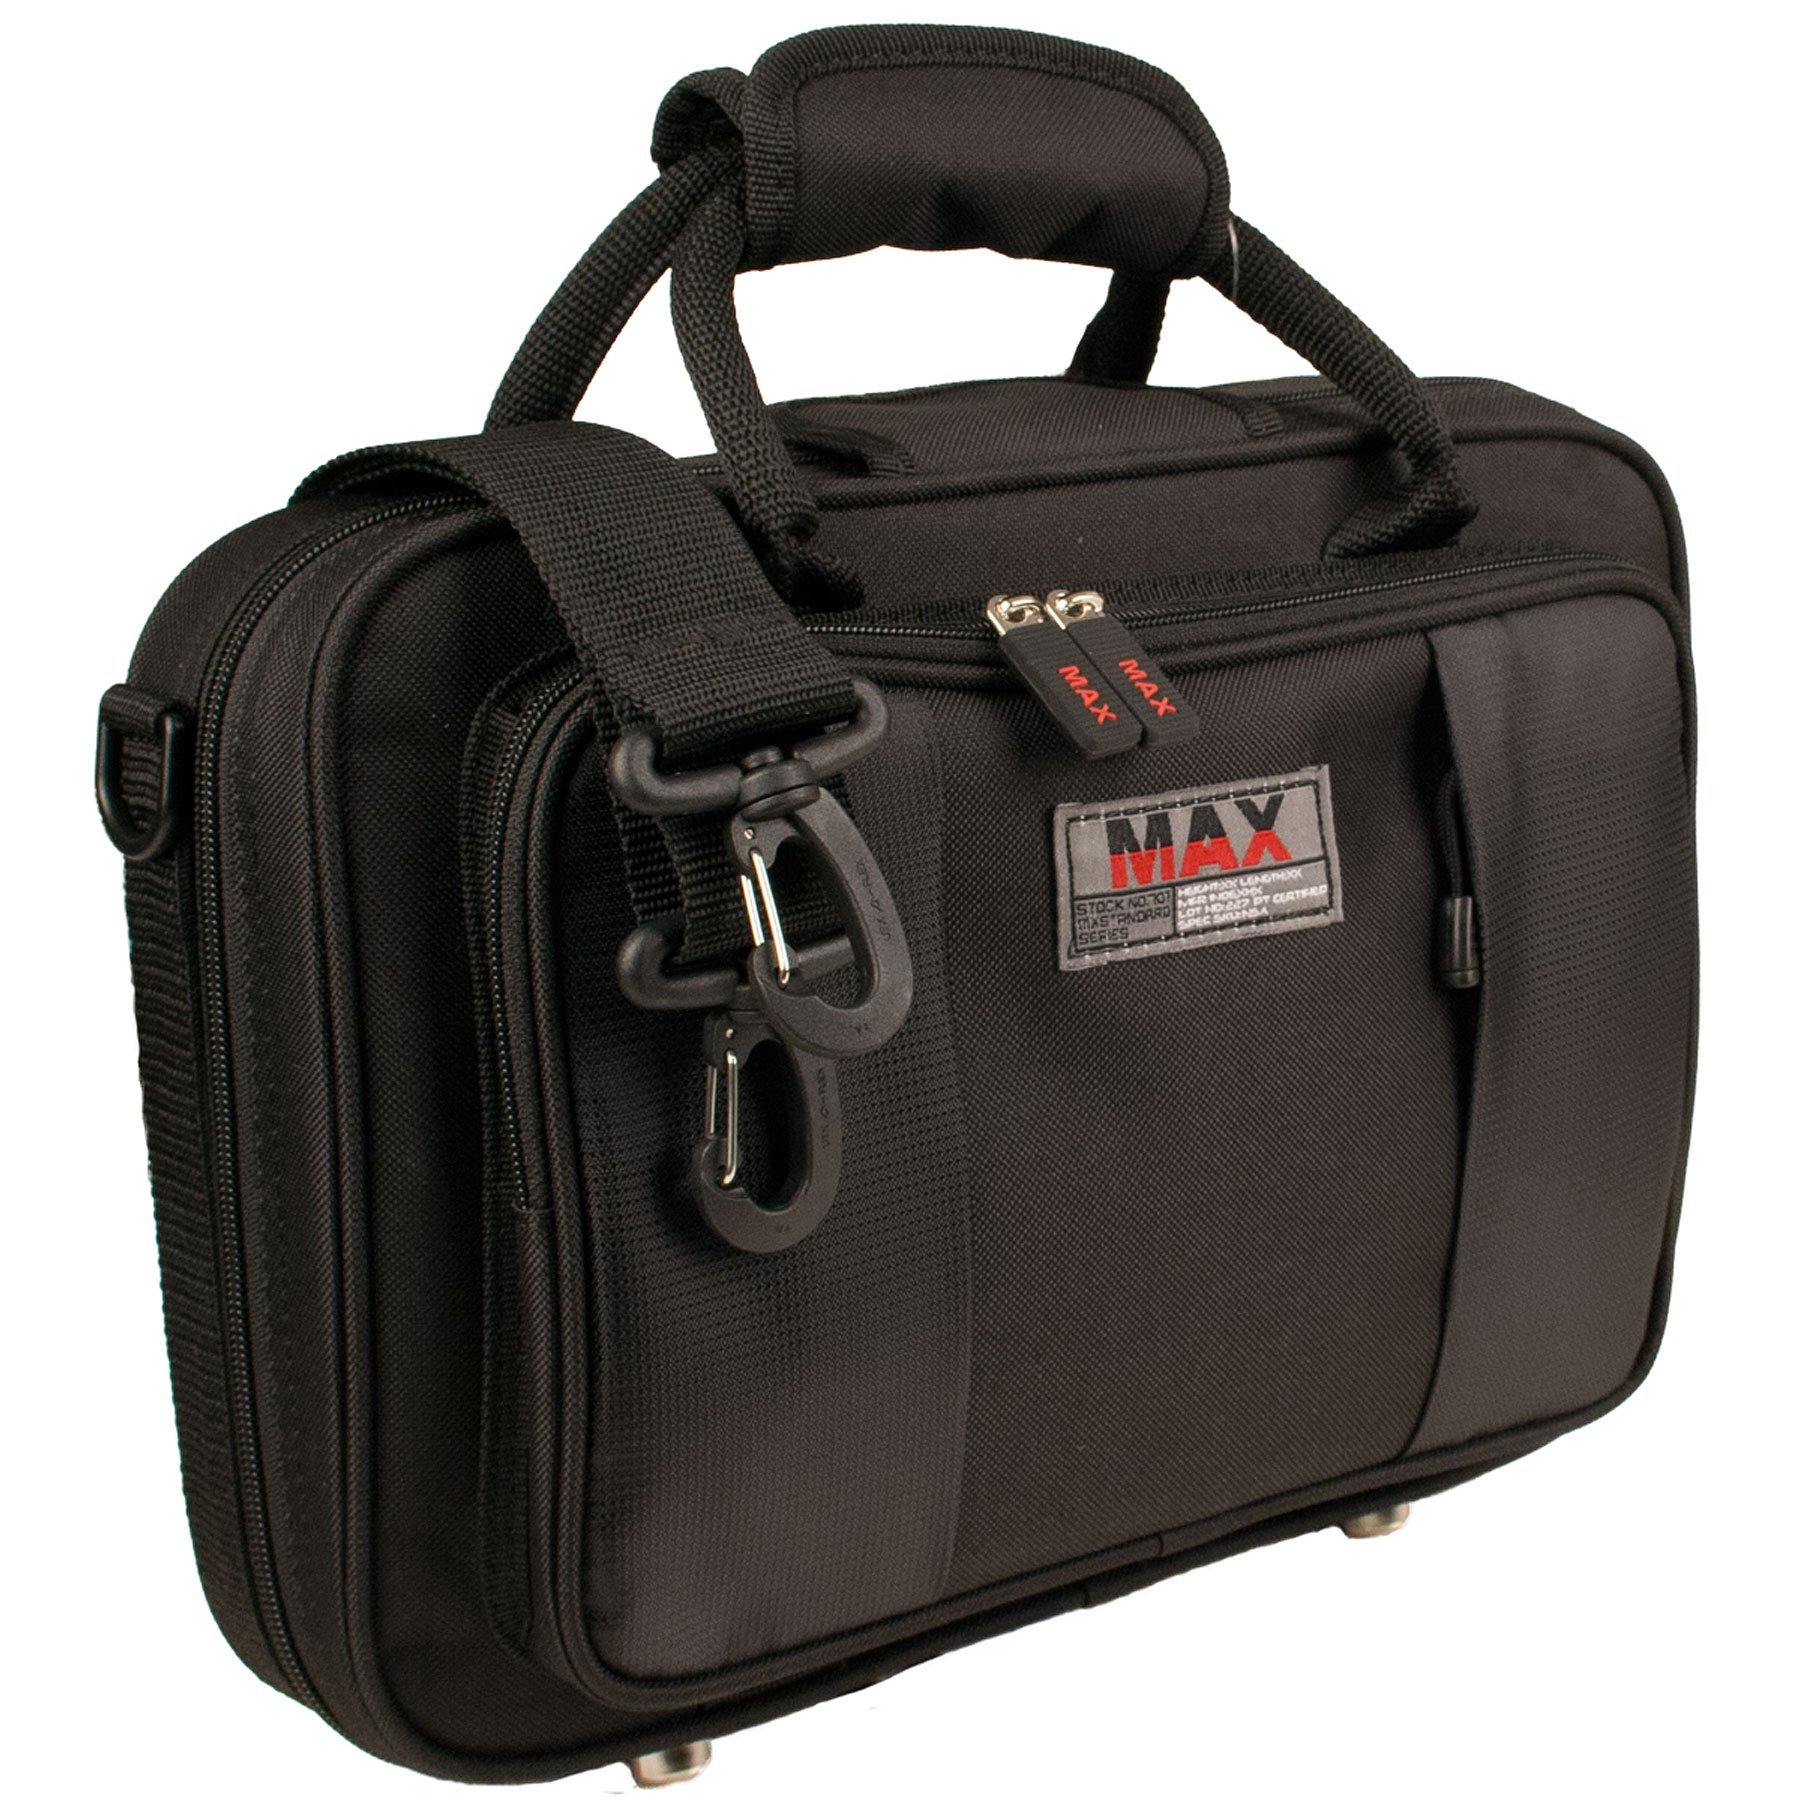 Protec Bb Clarinet MAX Case (Black), Model MX307 by ProTec (Image #1)